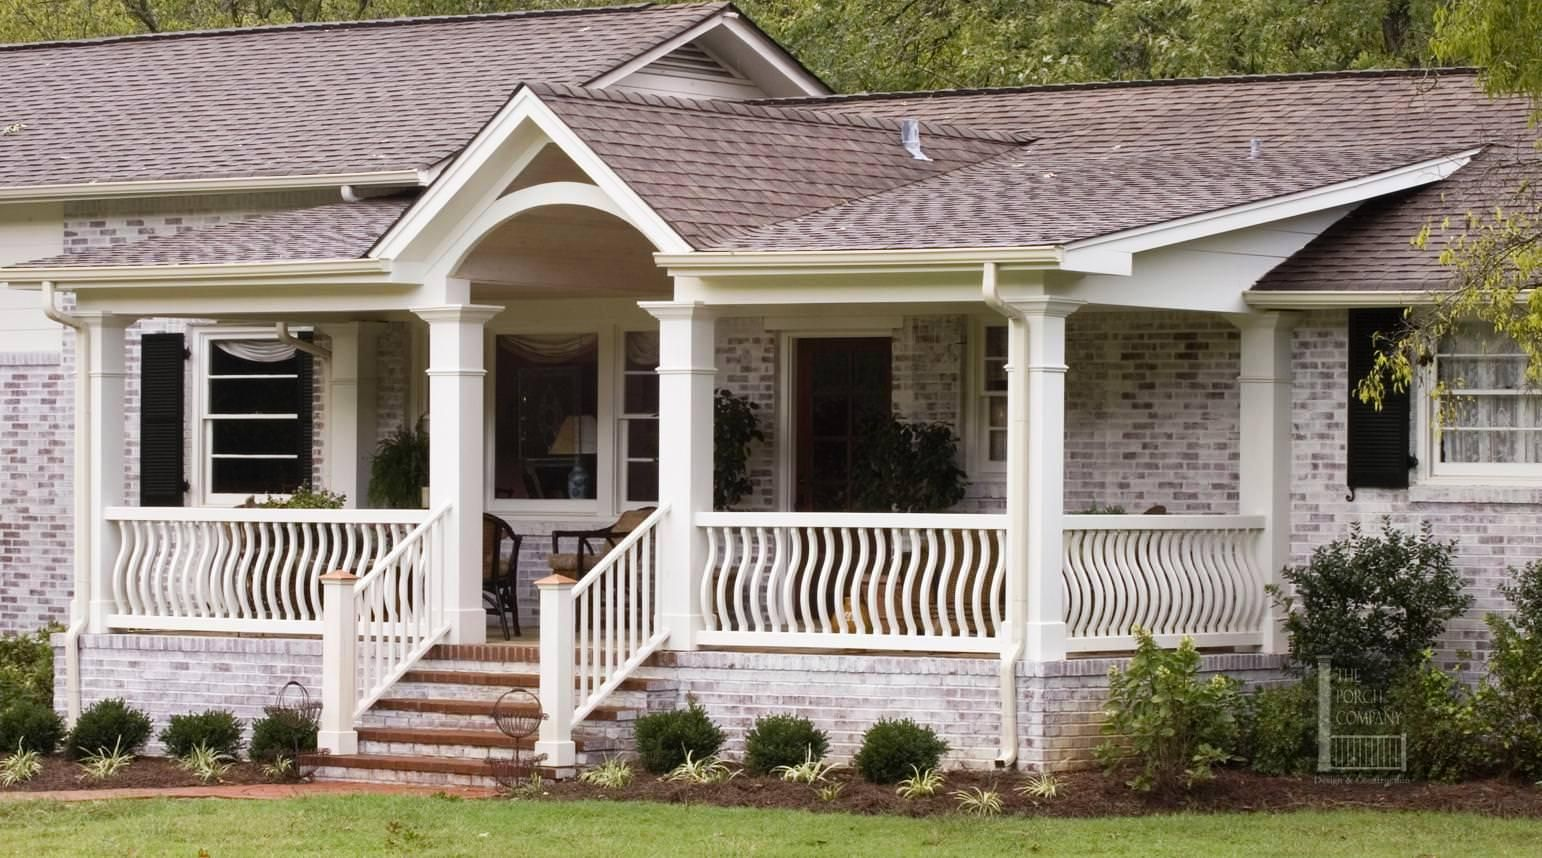 astounding front deck ideas for ranch style homes. Front Porches for Ranch Style Homes  Amazing front